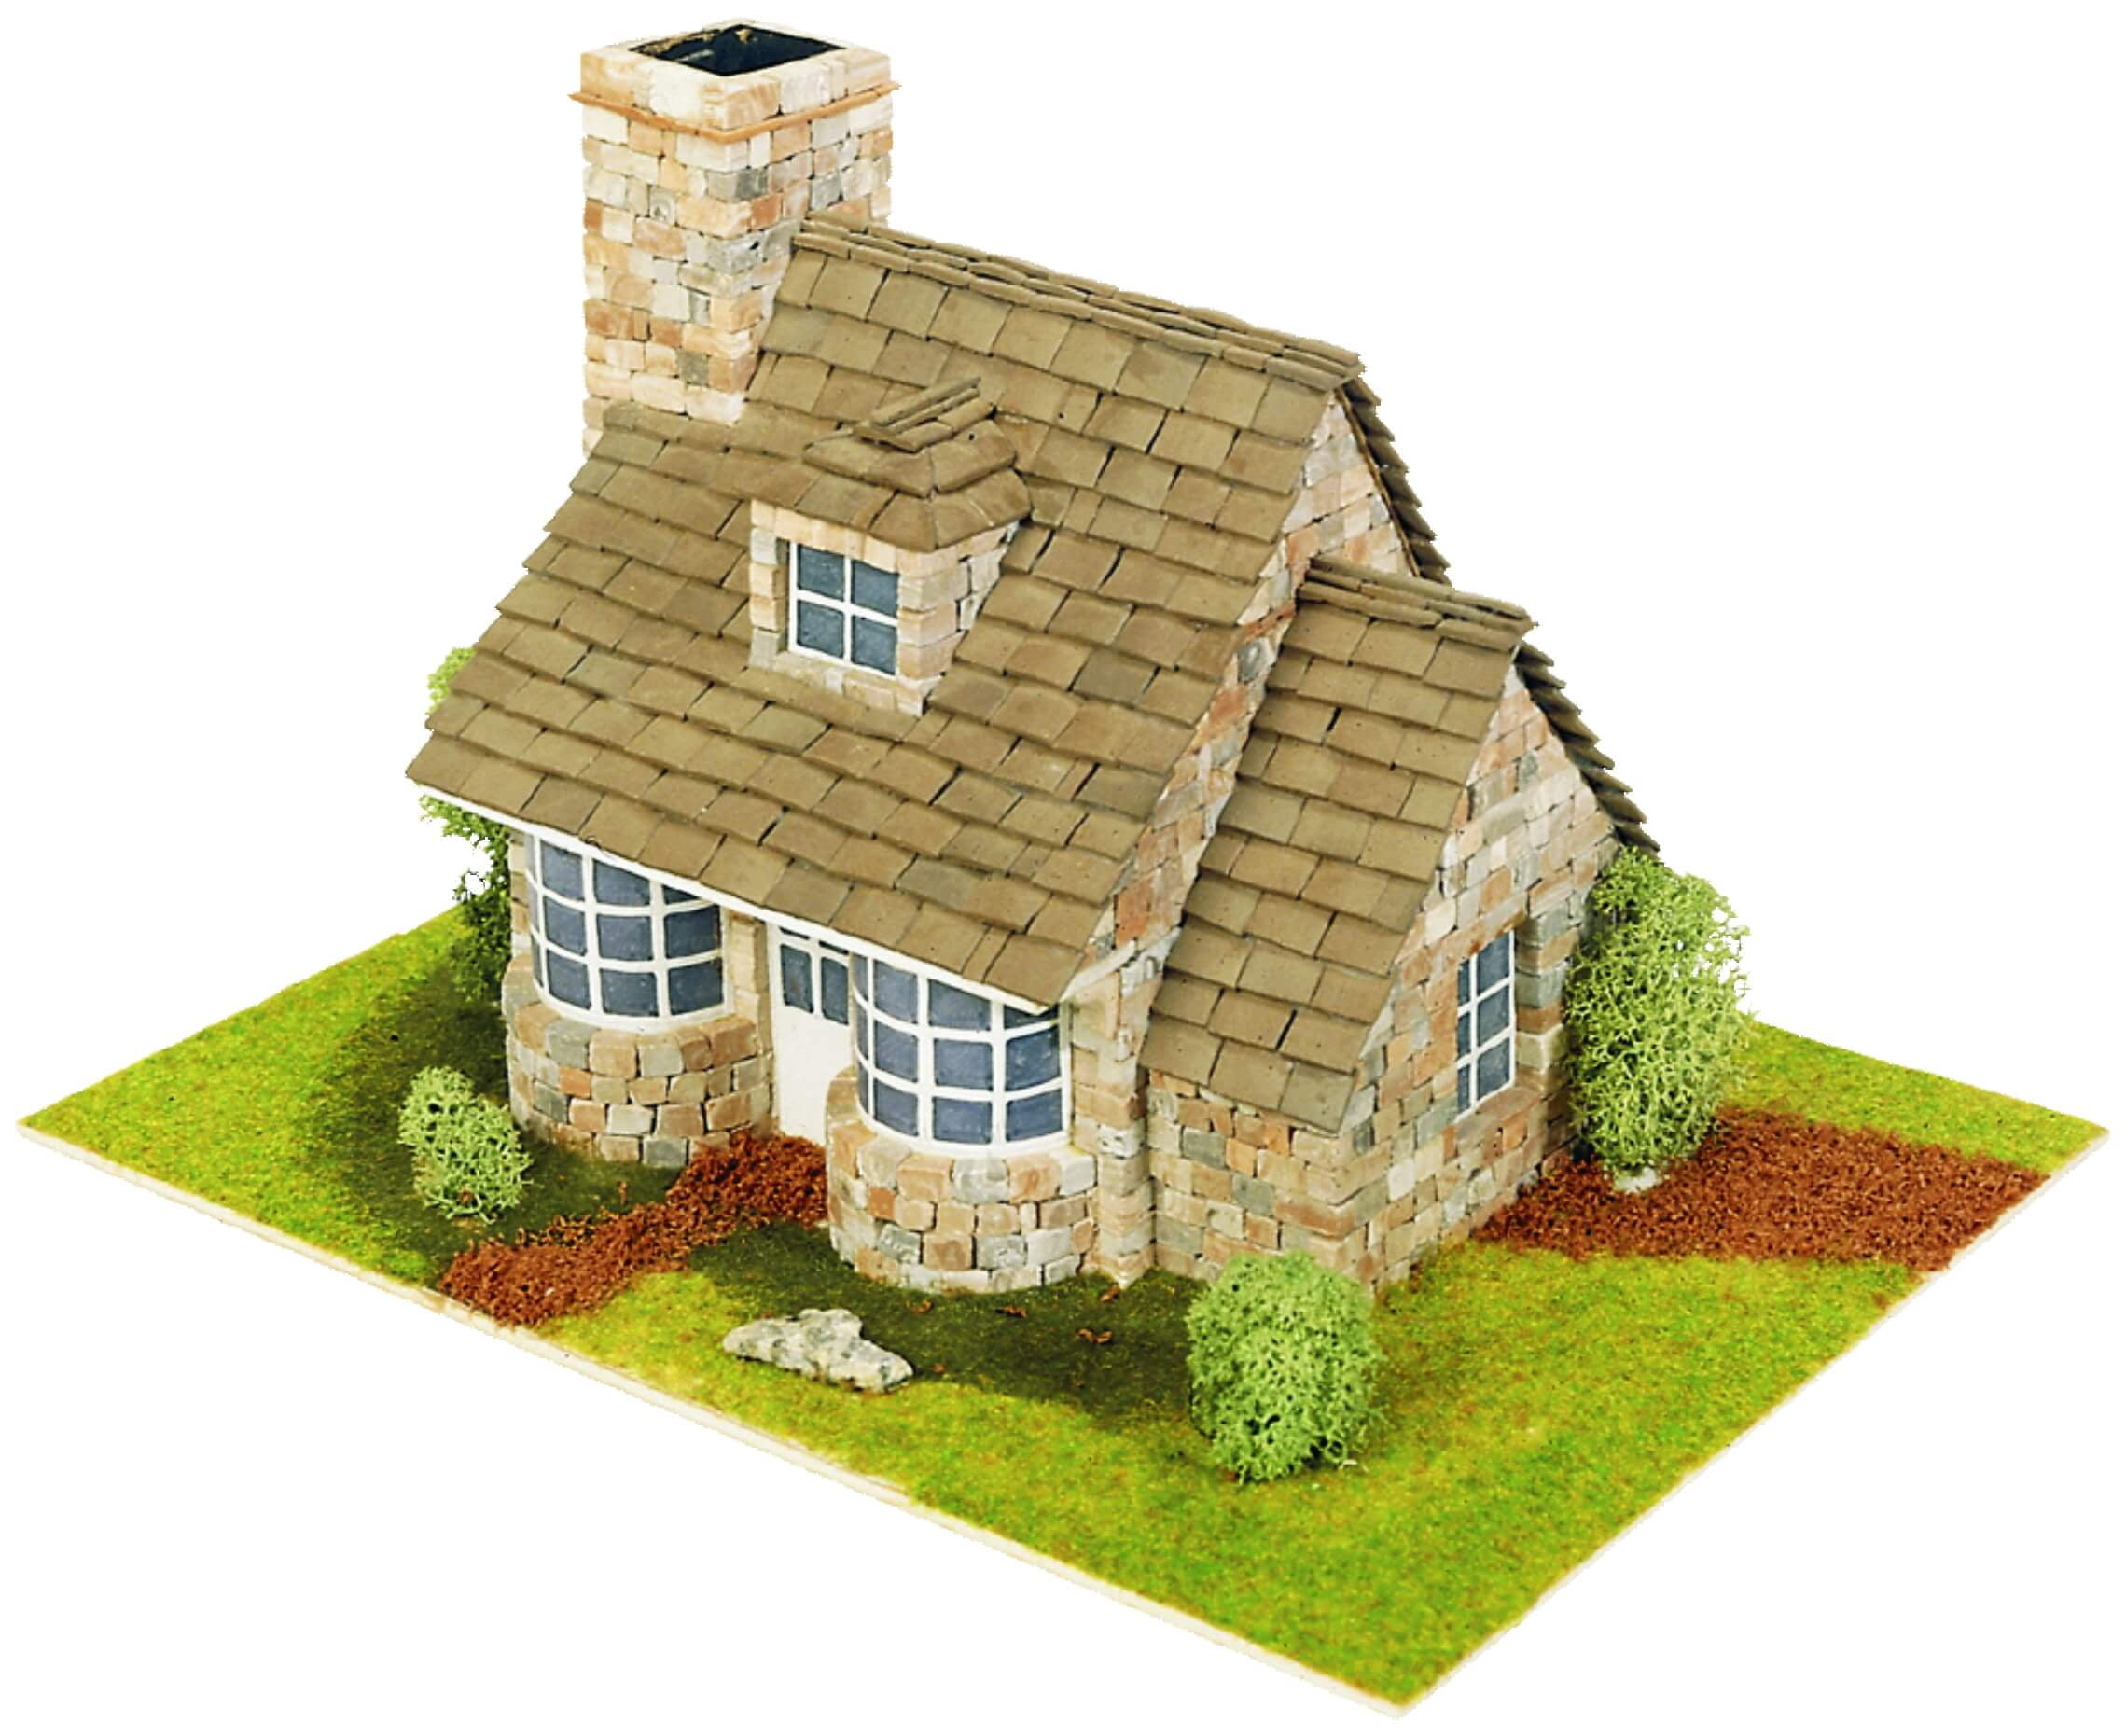 Domus kits country cottage 40041 hobbies for Brick kit homes